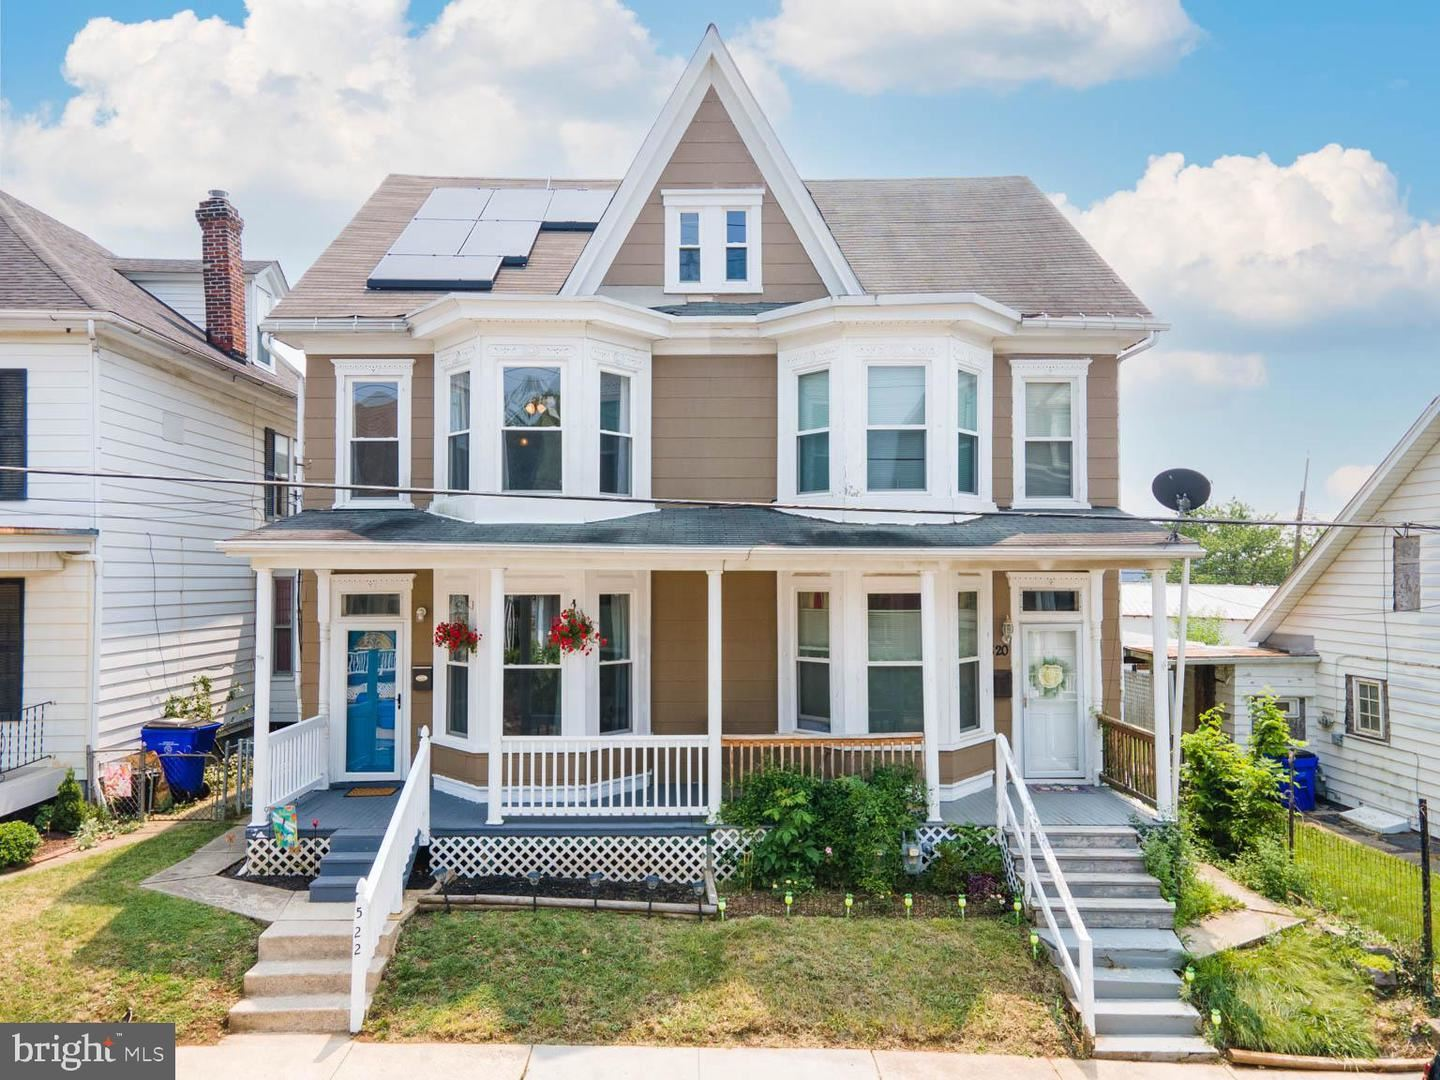 Photo of 522 N MULBERRY ST, HAGERSTOWN, MD 21740 (MLS # MDWA2000906)